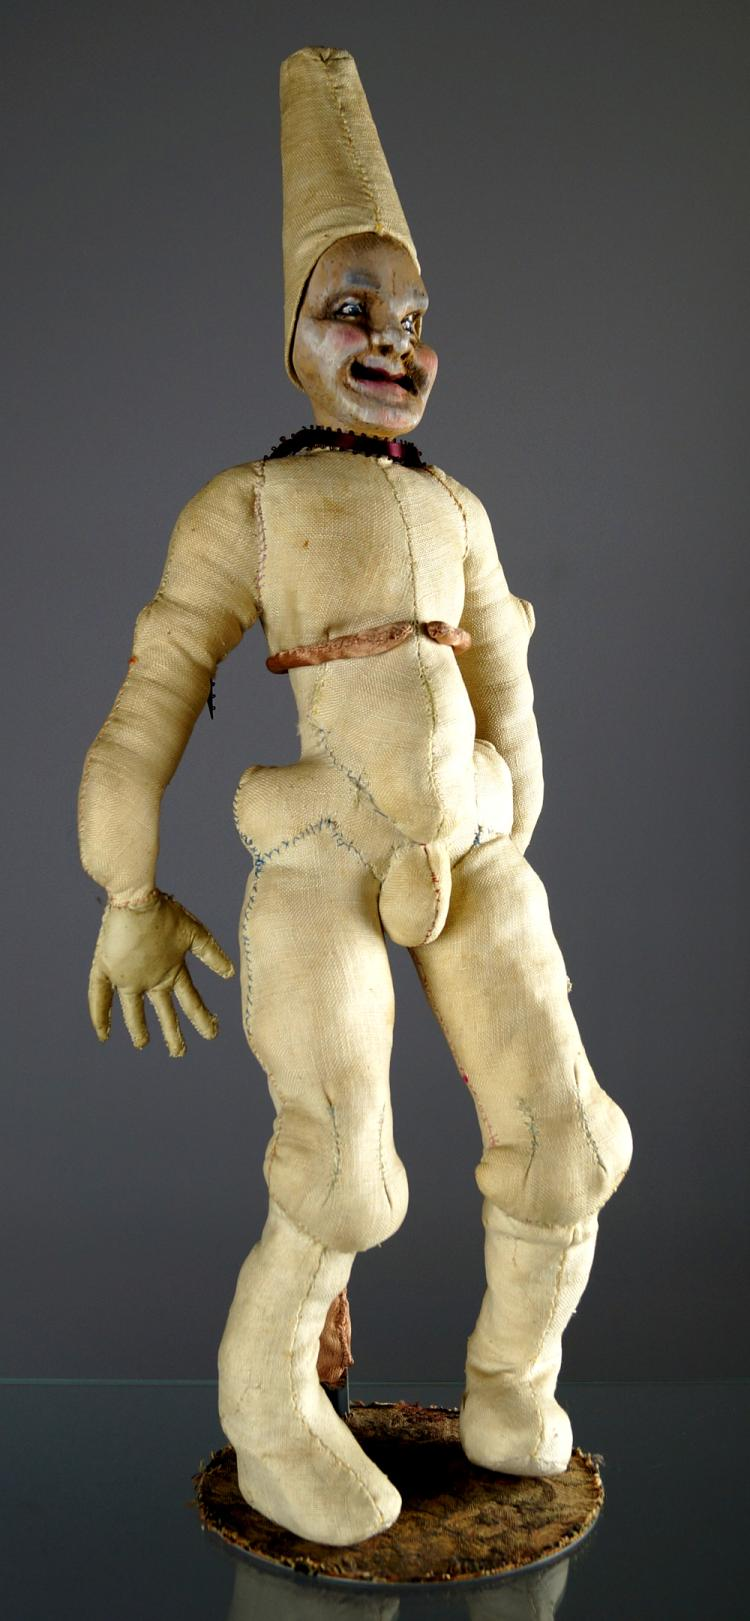 STUART TAYLOR RABB (NEW YORK 20TH CENTURY) HIGHLY UNUSUAL CARVED WOOD AND CLOTH BODY FIGURE OF